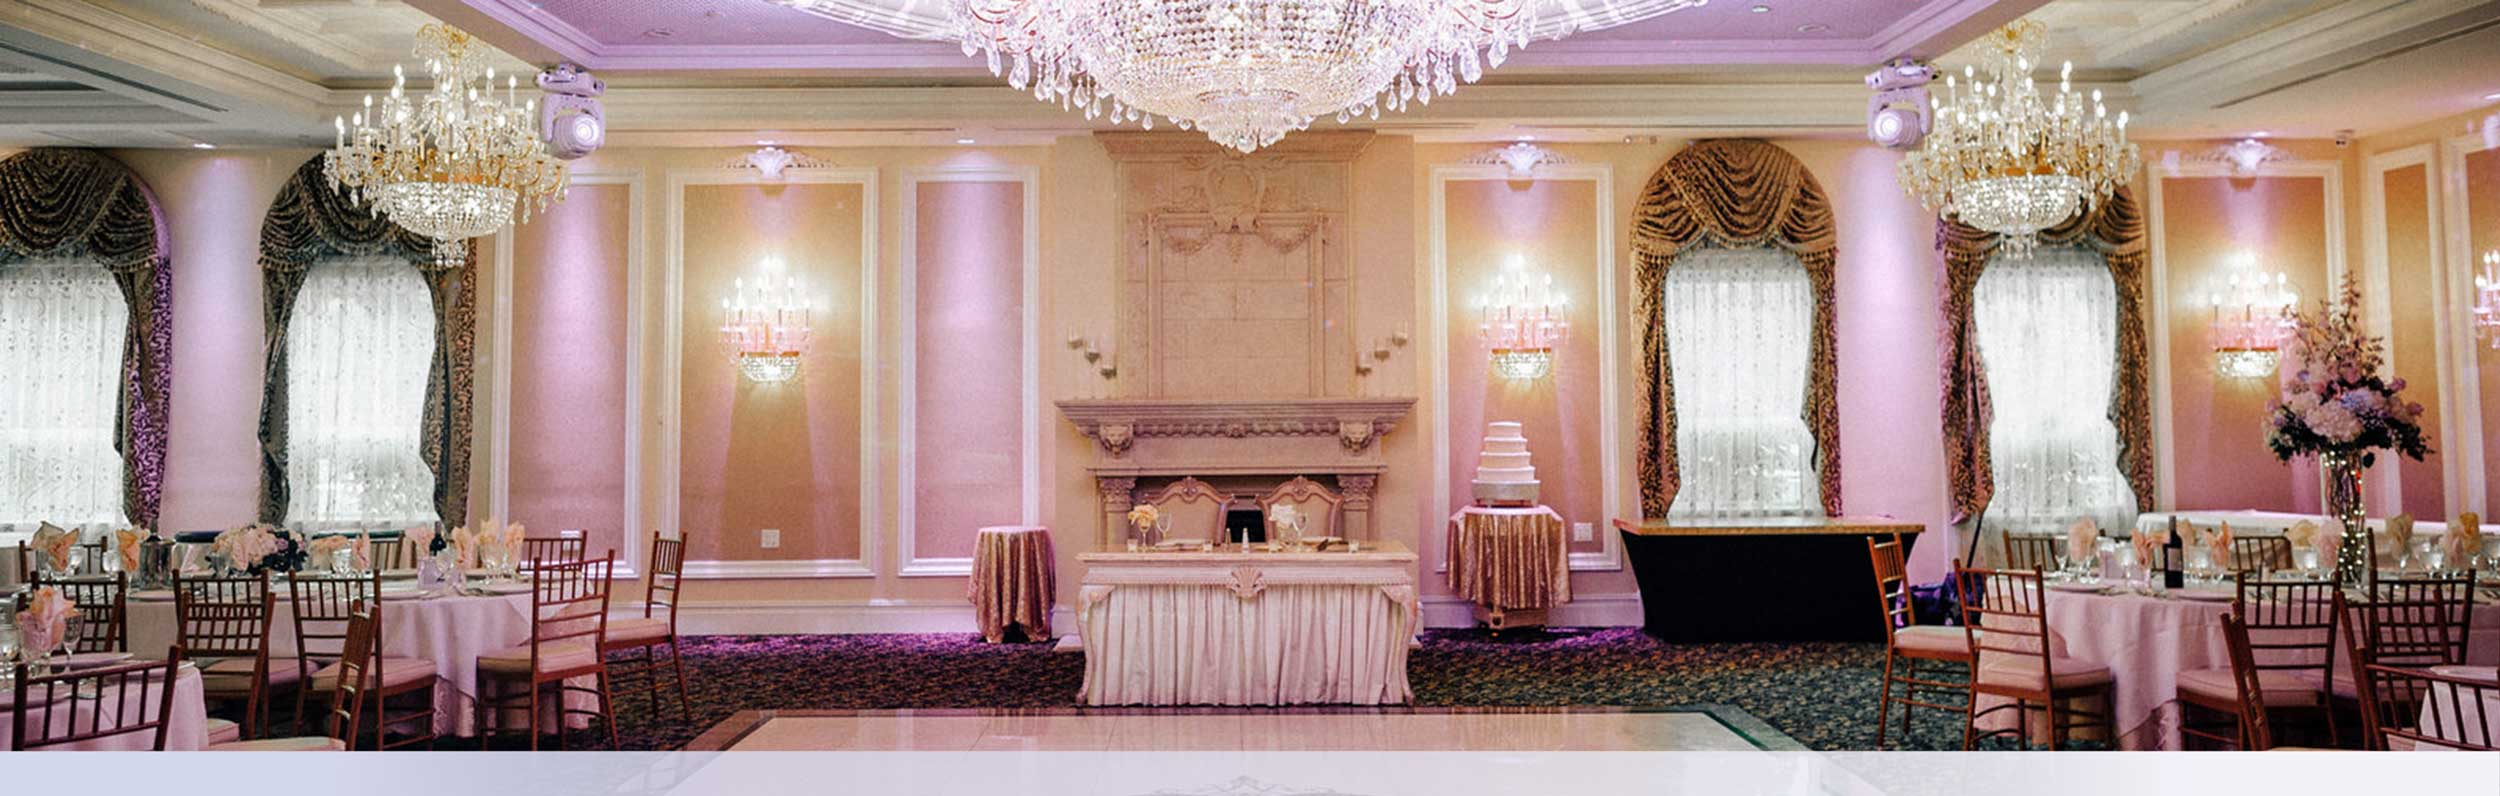 Beautiful Stirling Nj Wedding Reception Venue